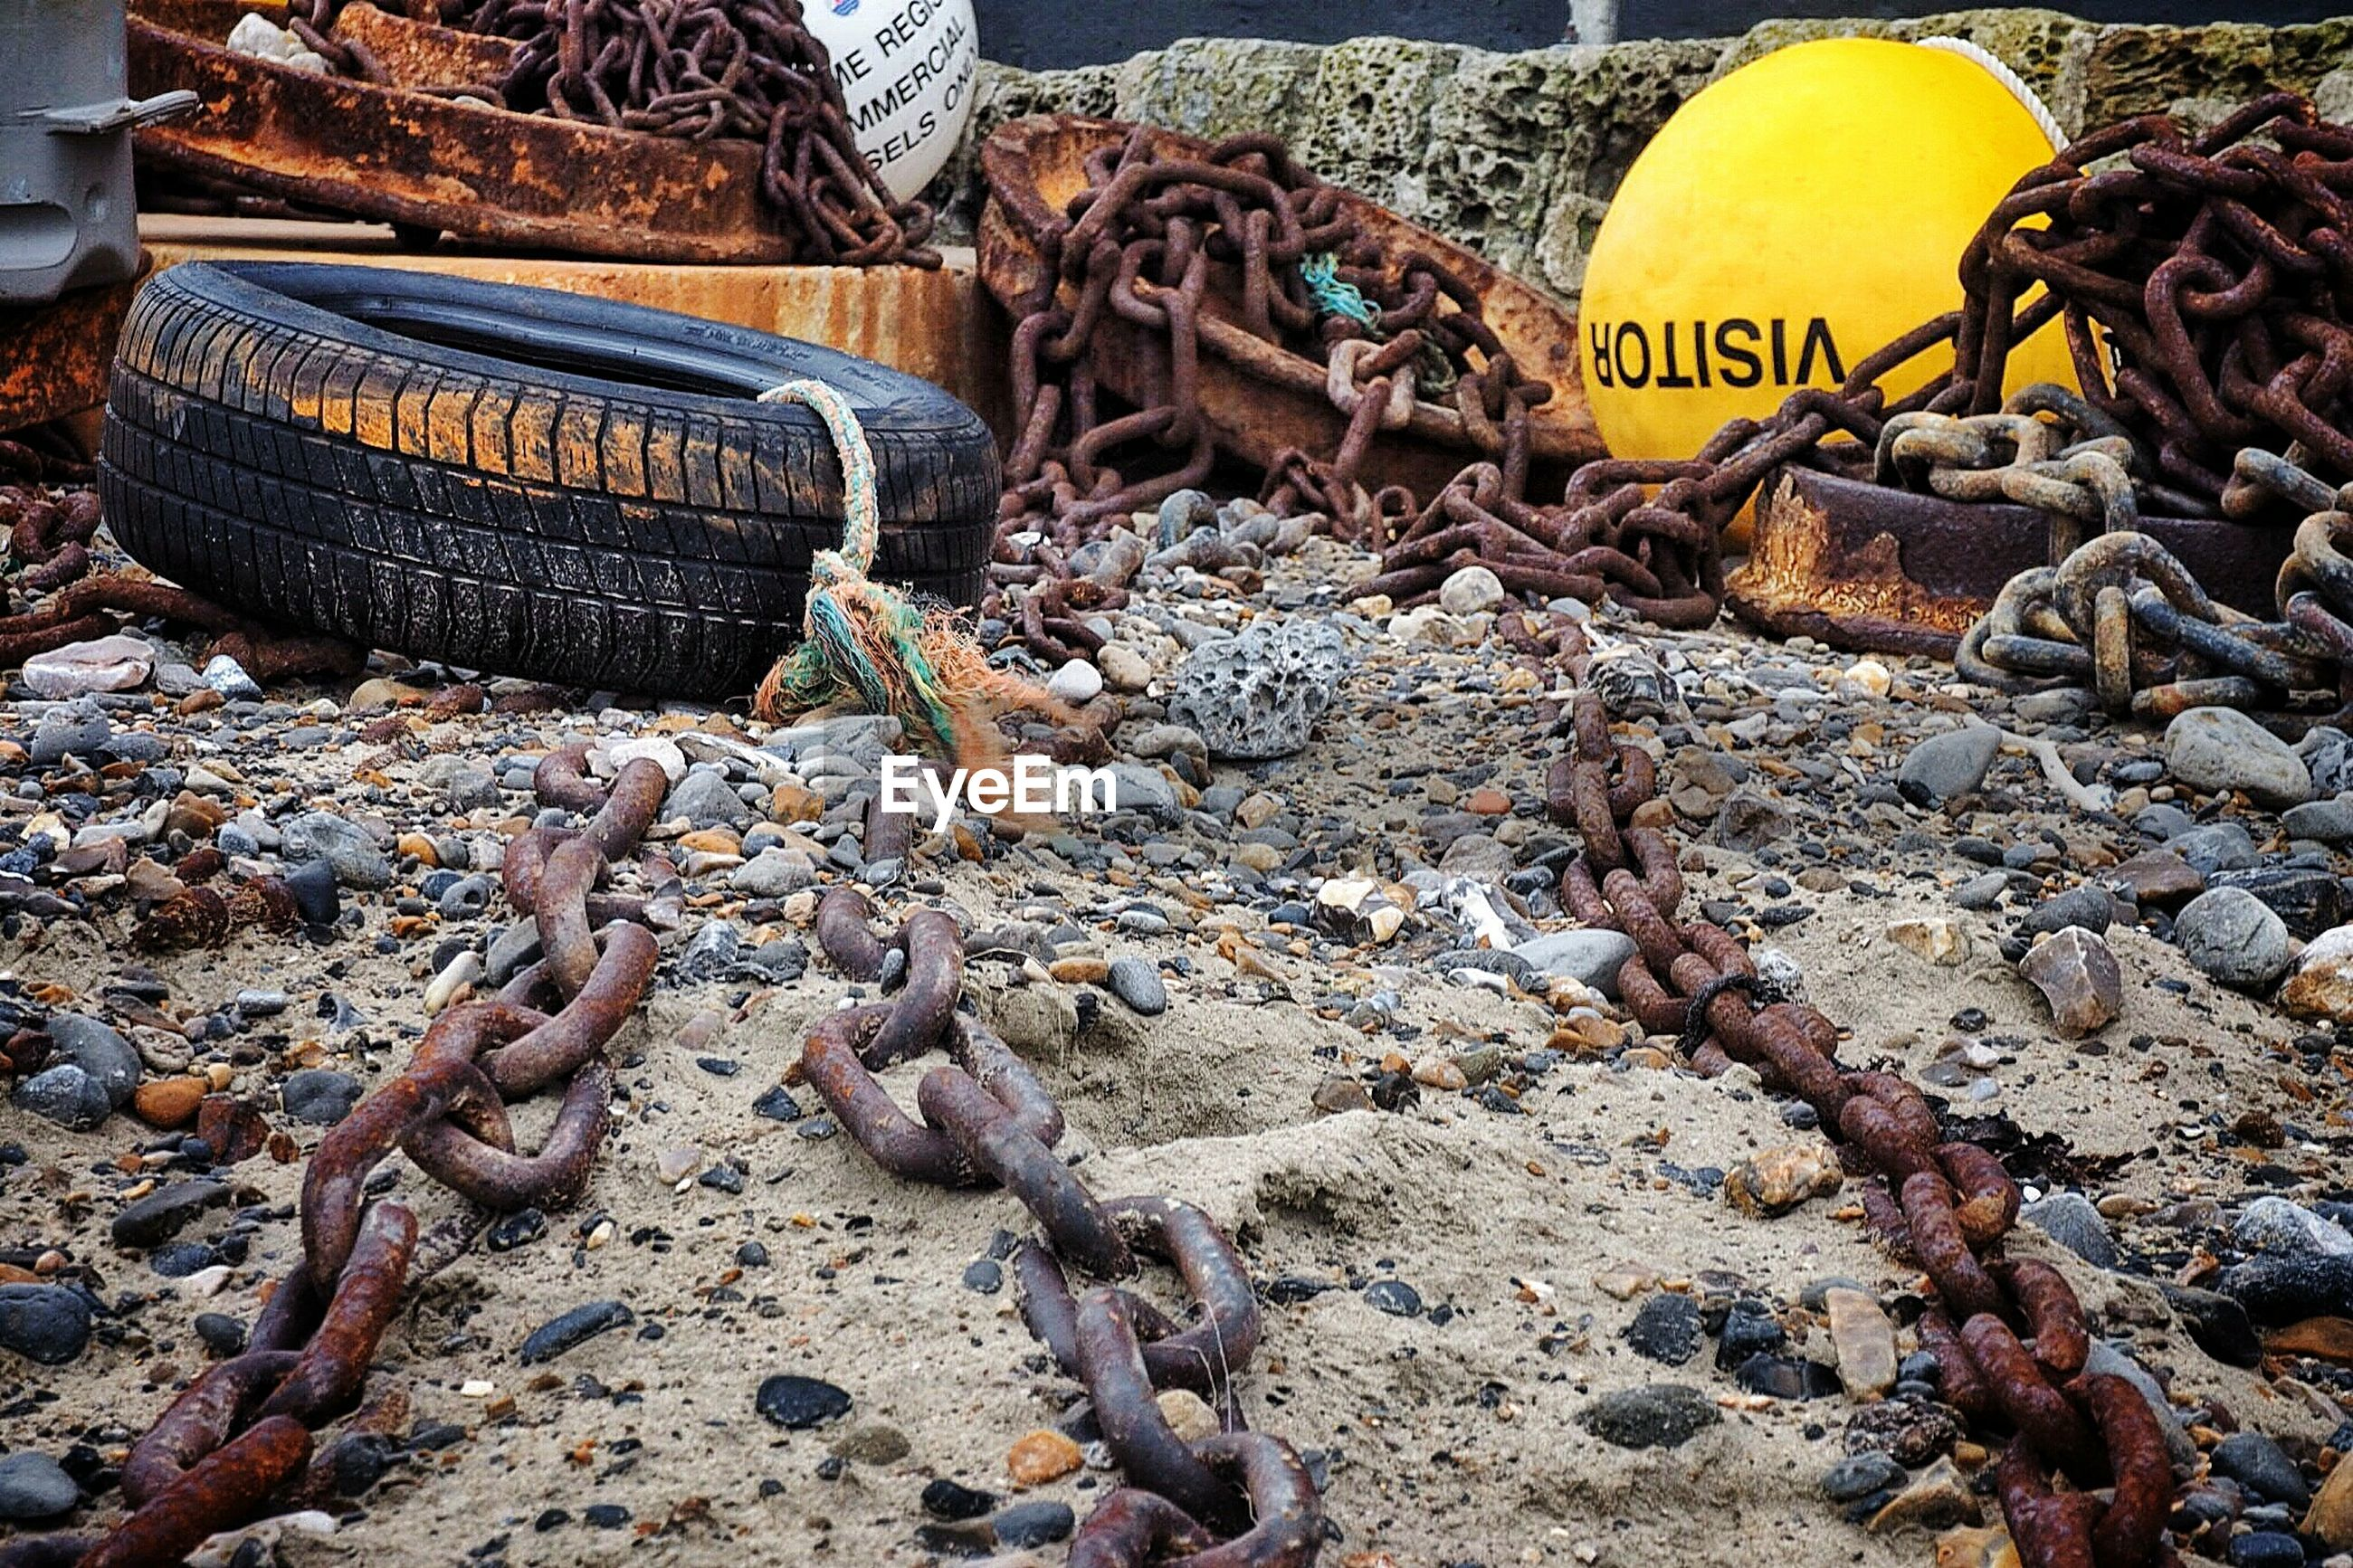 Rusty chains and tires with buoys at beach